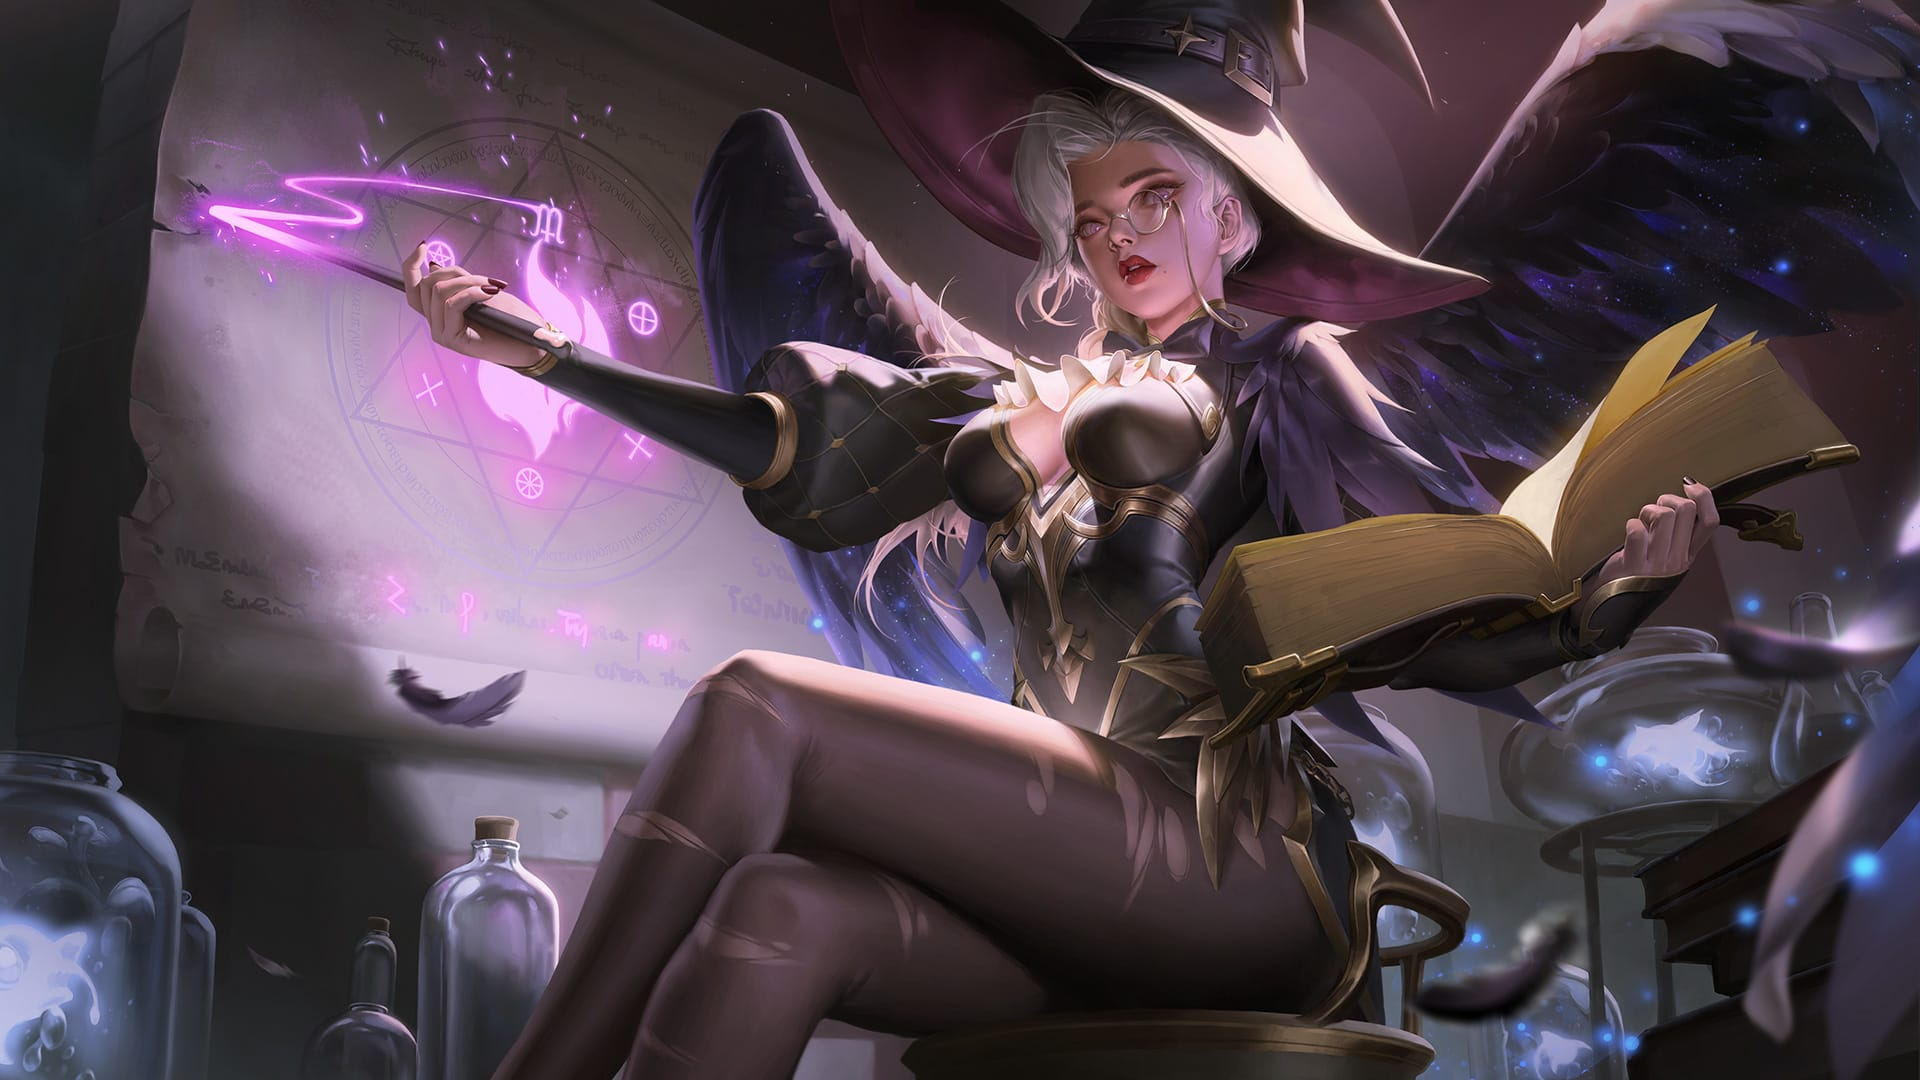 Wallpaper Alice Wizardy Teacher Mobile Legends HD for PC - Hobigame.id